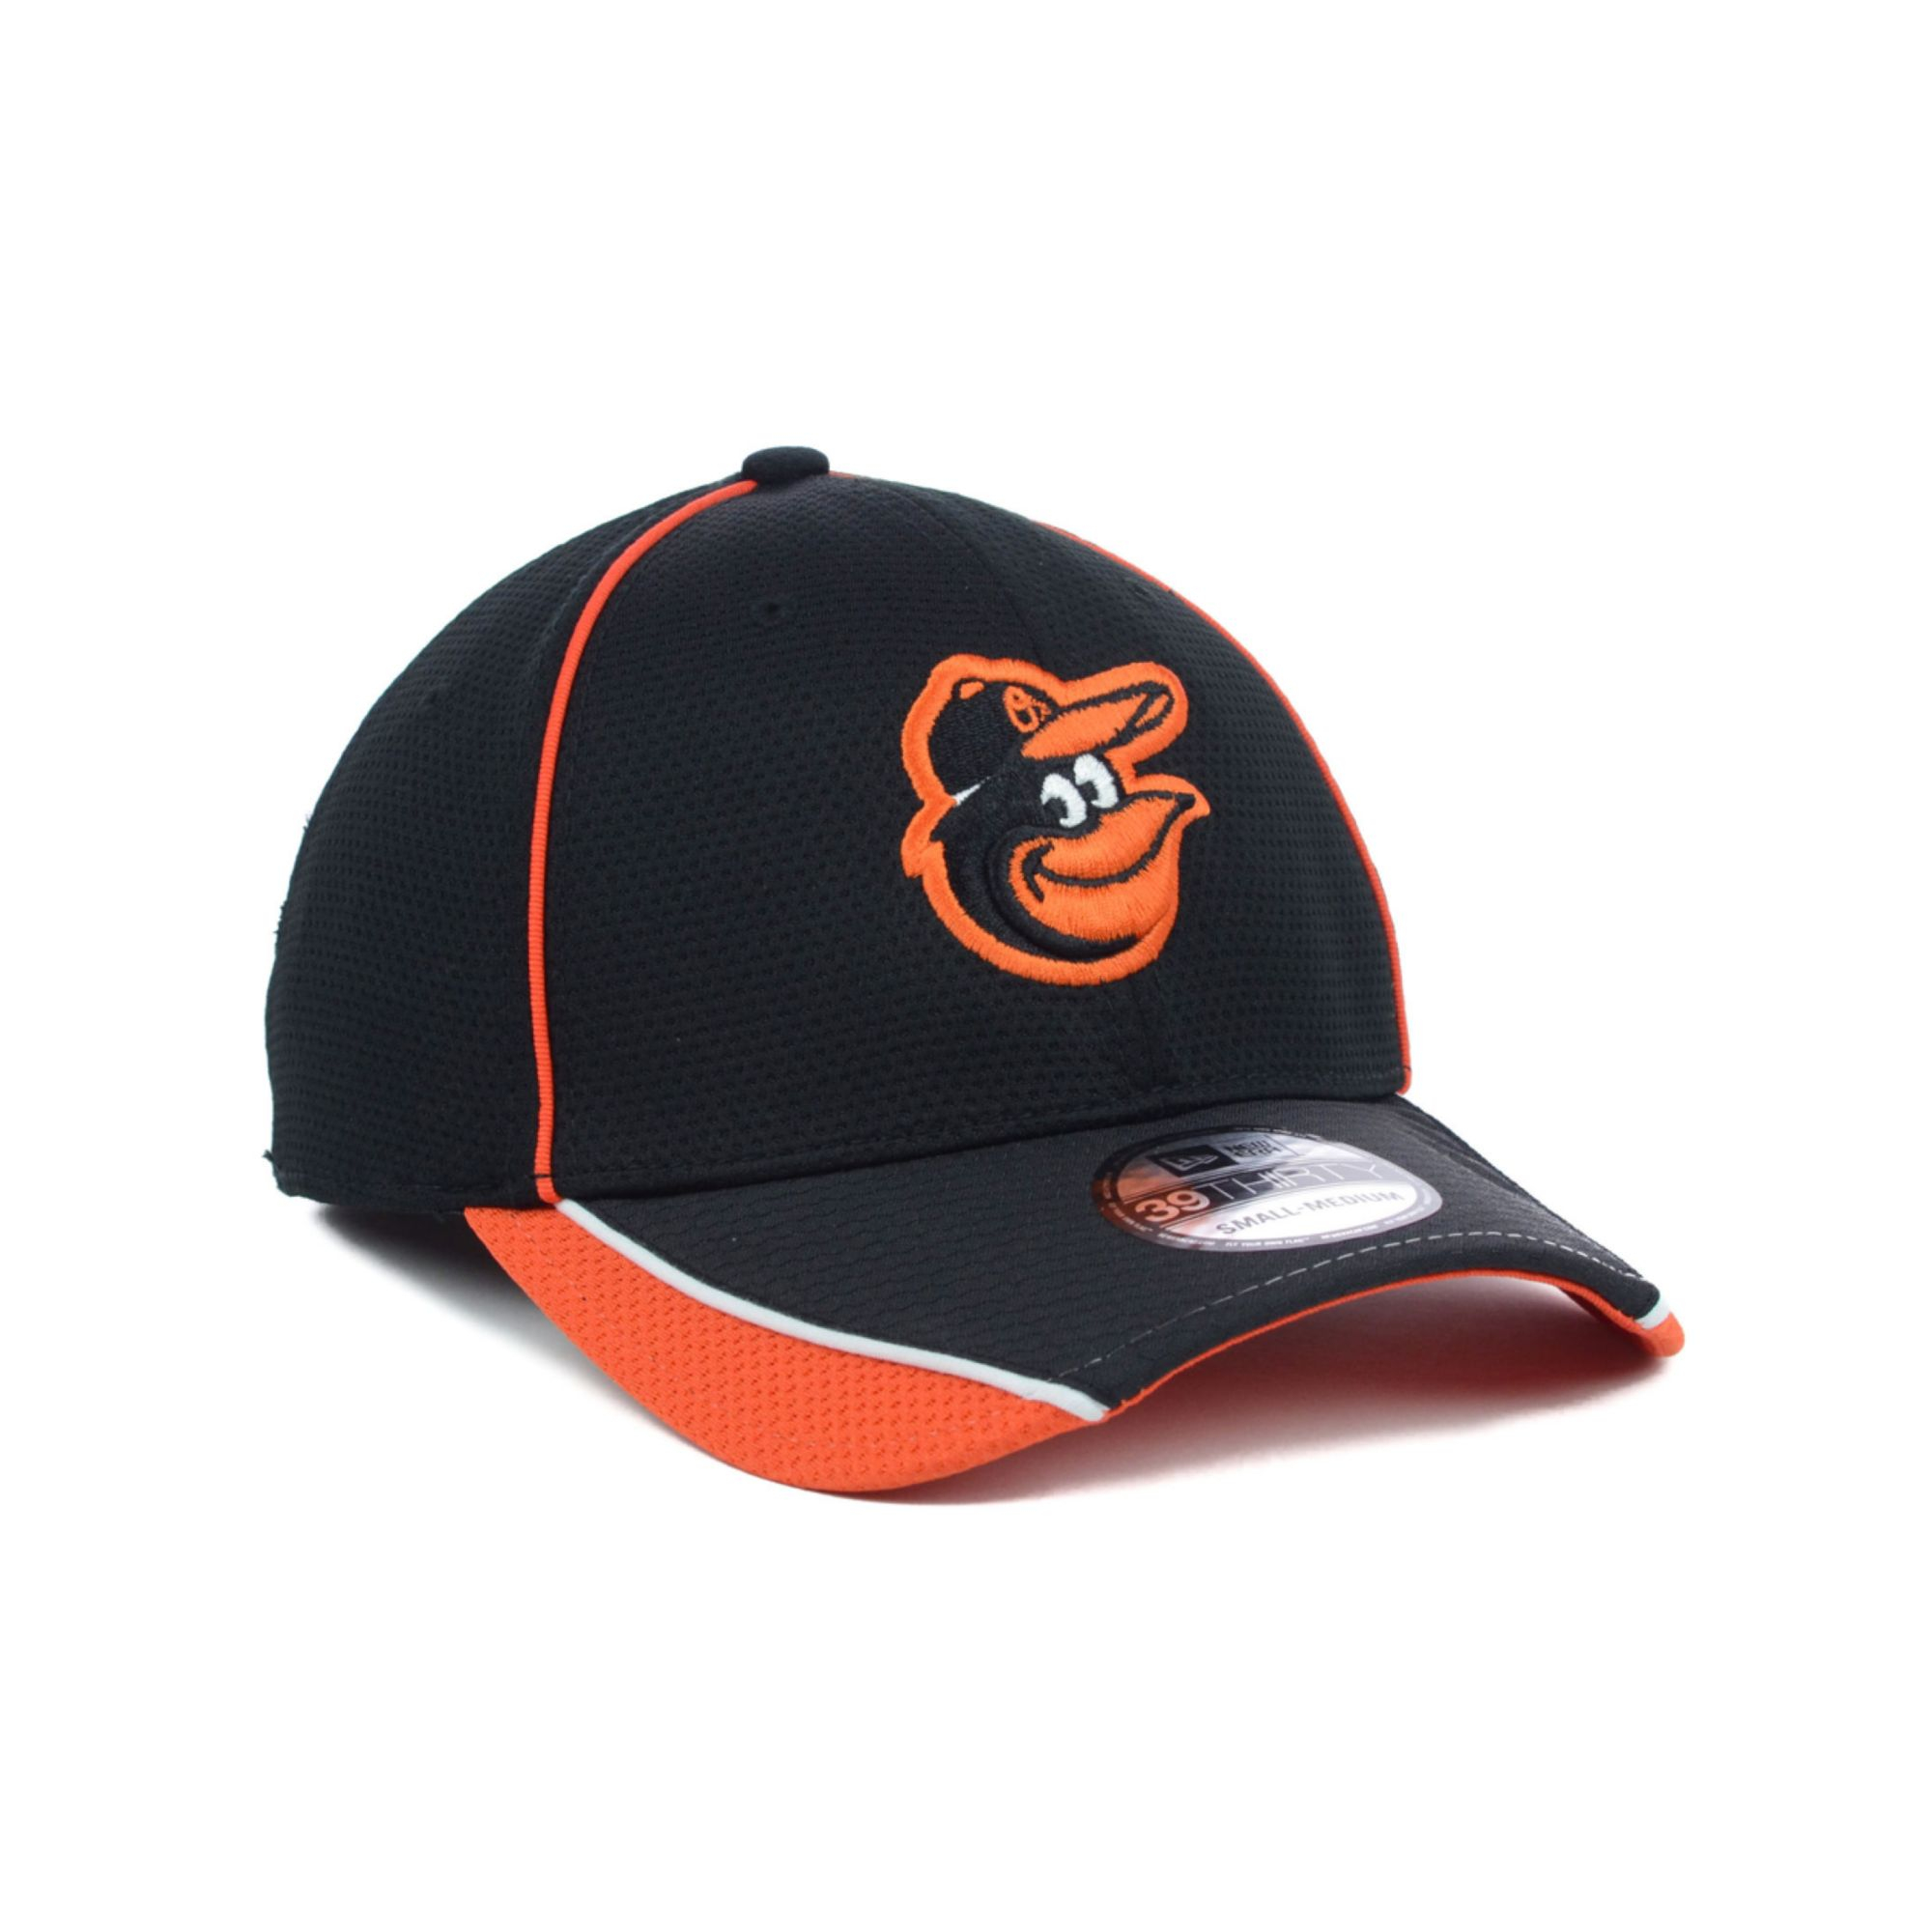 quality design 0d8a3 f25ae switzerland lyst ktz baltimore orioles mlb pipe slide 39thirty cap in black  7c0d8 52d34